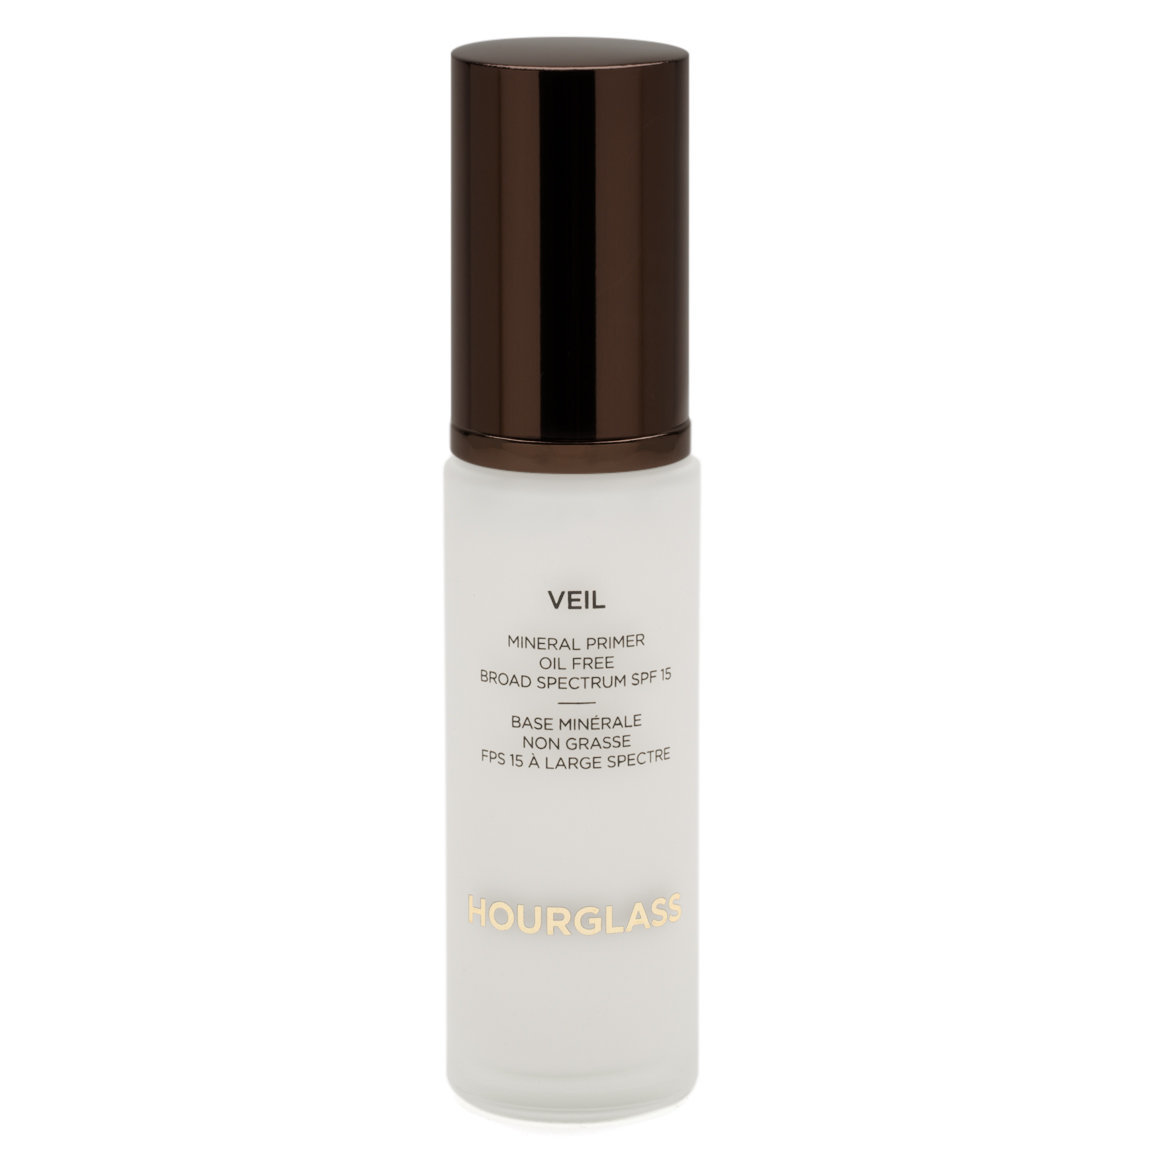 Hourglass Veil Mineral Primer 30 ml alternative view 1 - product swatch.